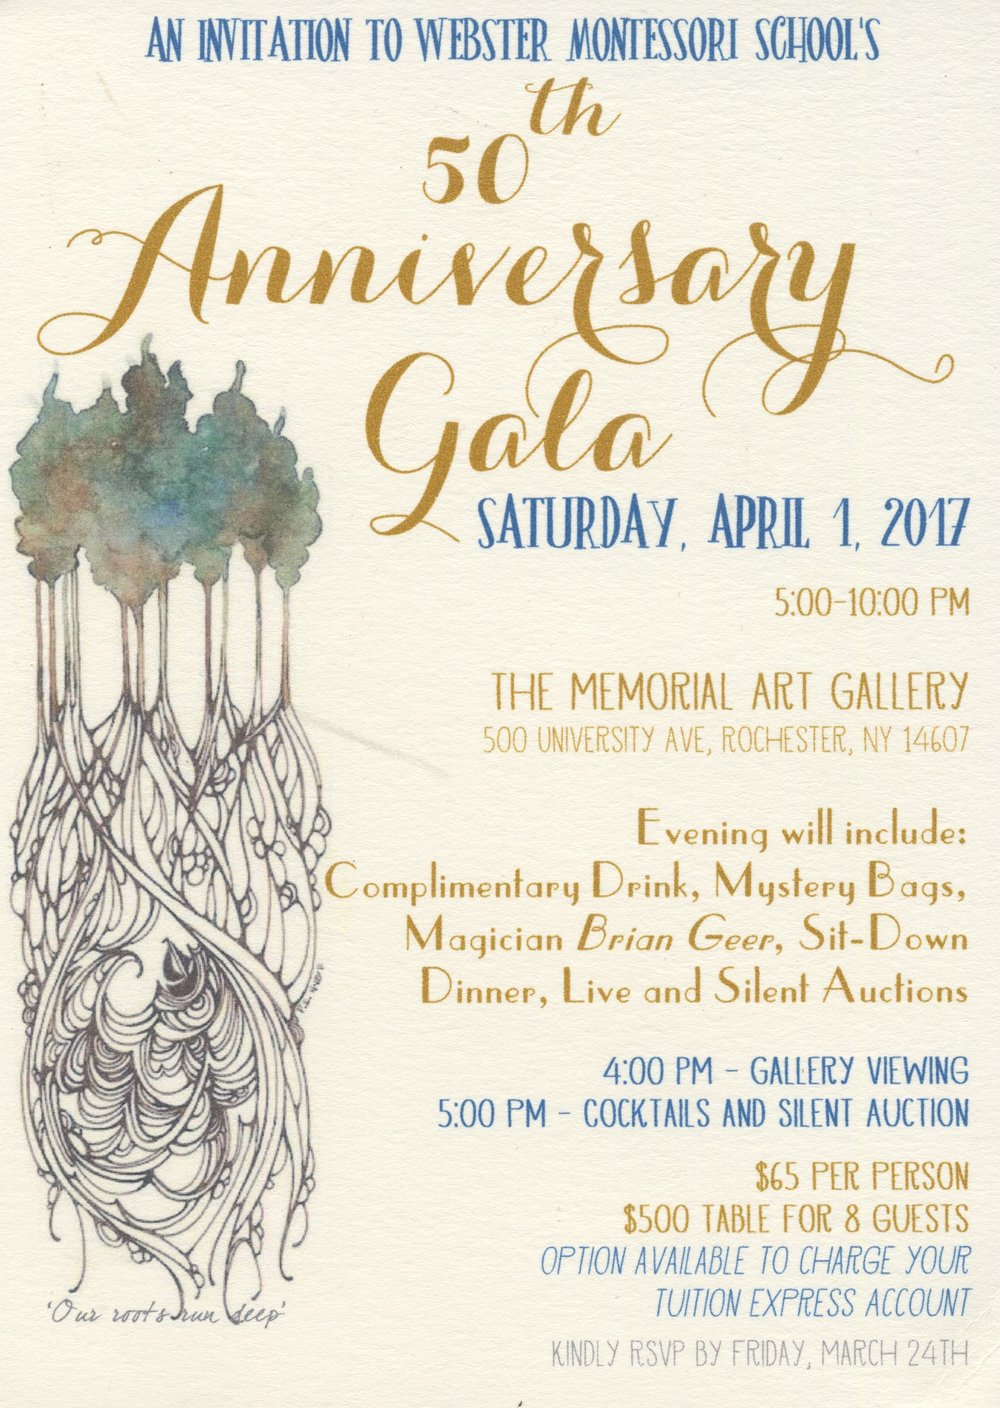 Gala Invitation.jpeg